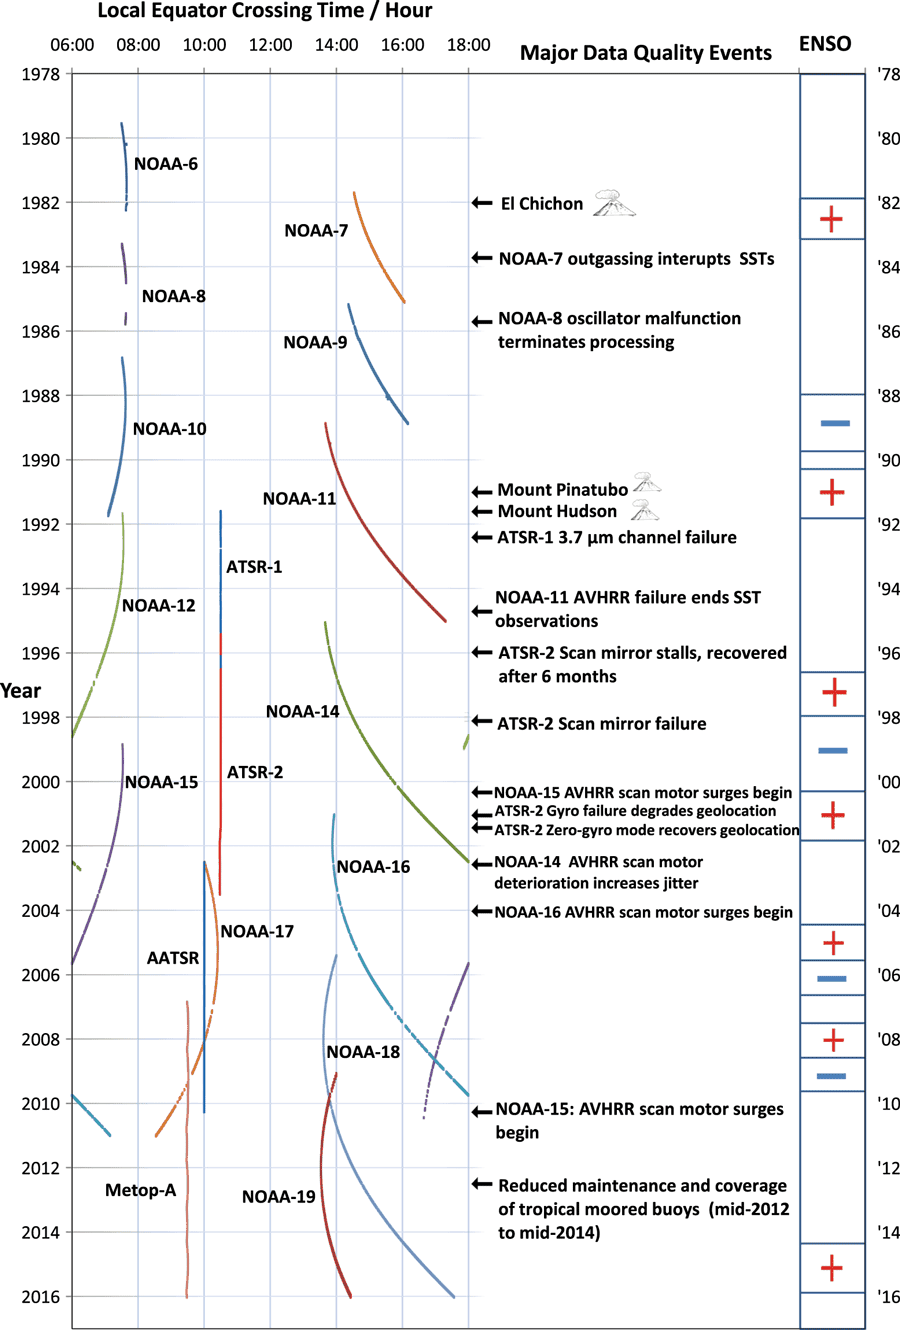 Timeline of contributing missions, geophysical and on-orbit events affecting data quality, and El Nino Southern Oscillation (ENSO) phase. Figure: Merchant et al., 2019